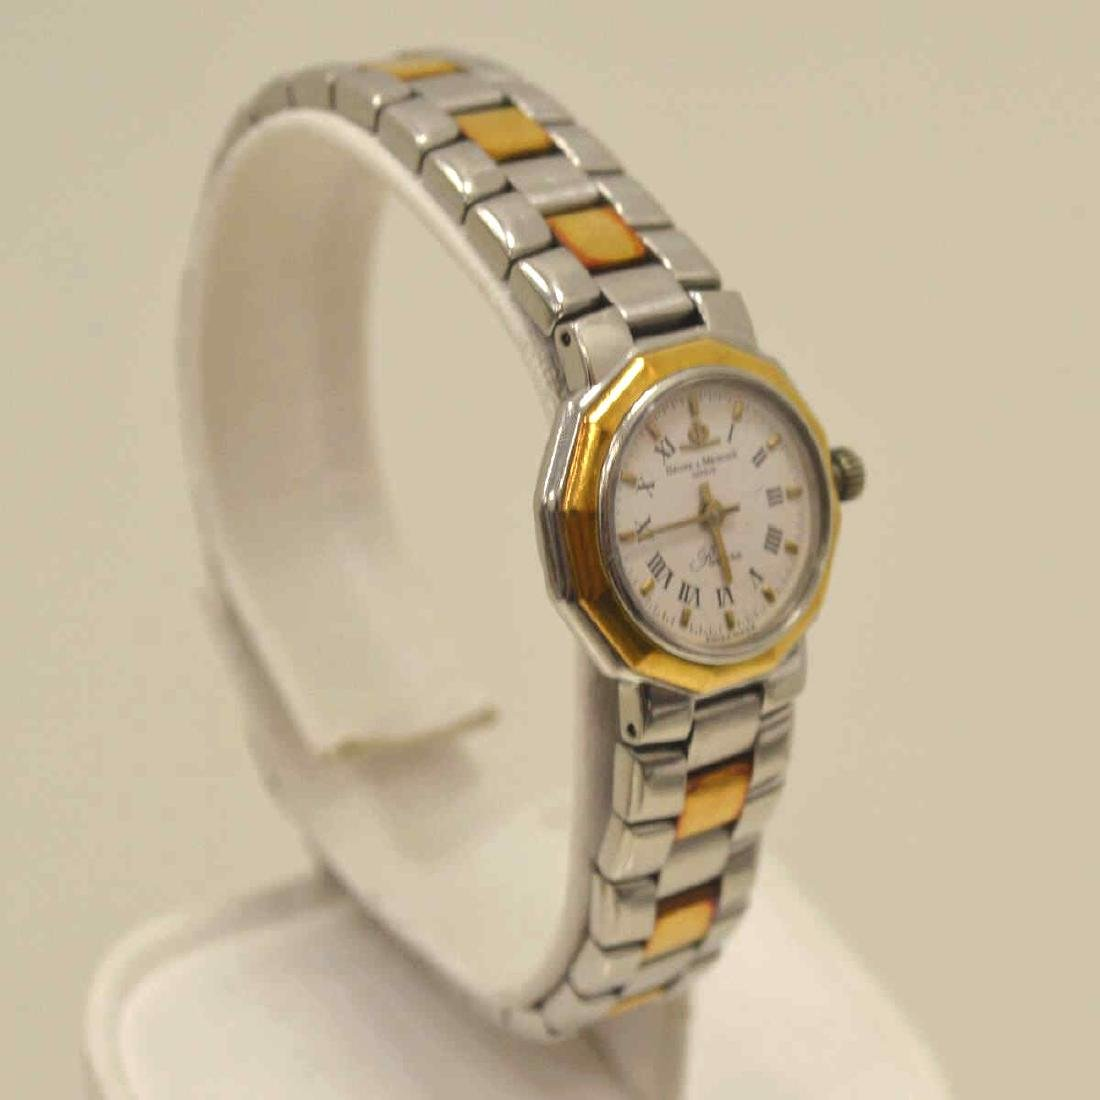 Ladies Two Tone Baume & Mercier Watch - 3